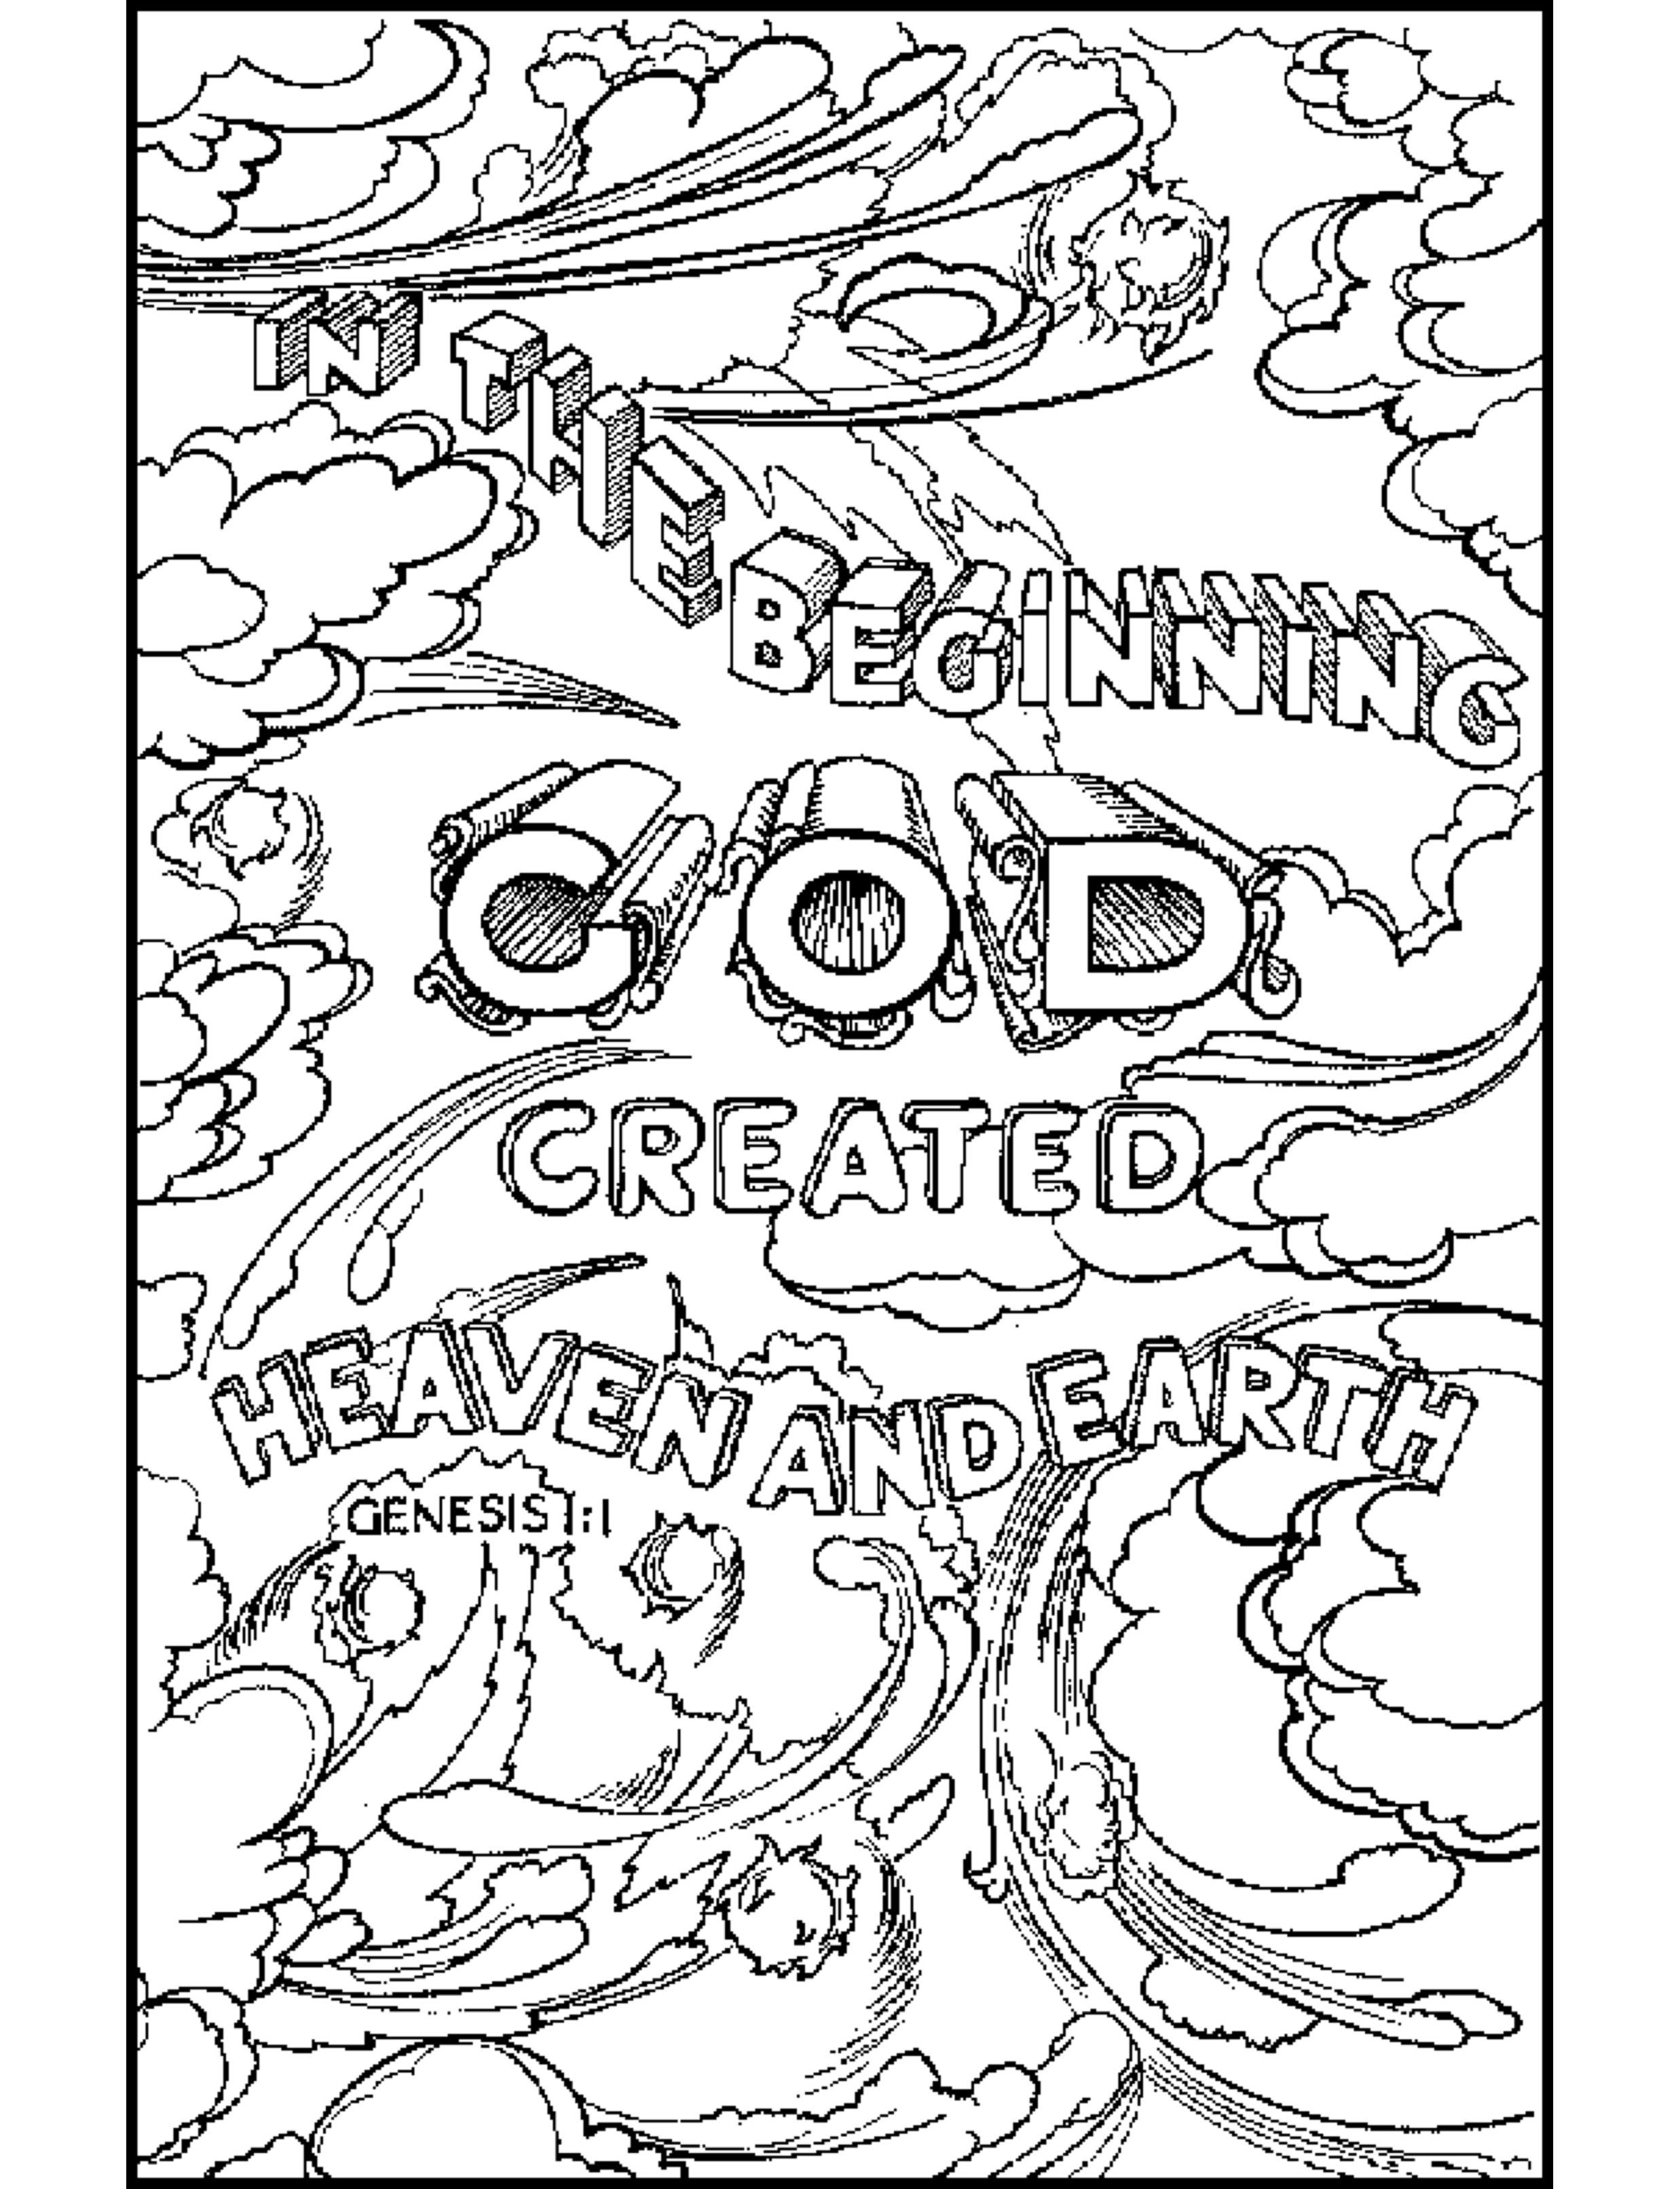 Bible Verse Coloring Pages Is Not Only Fun But Also A Very Interesting Method Of Instruction Description From